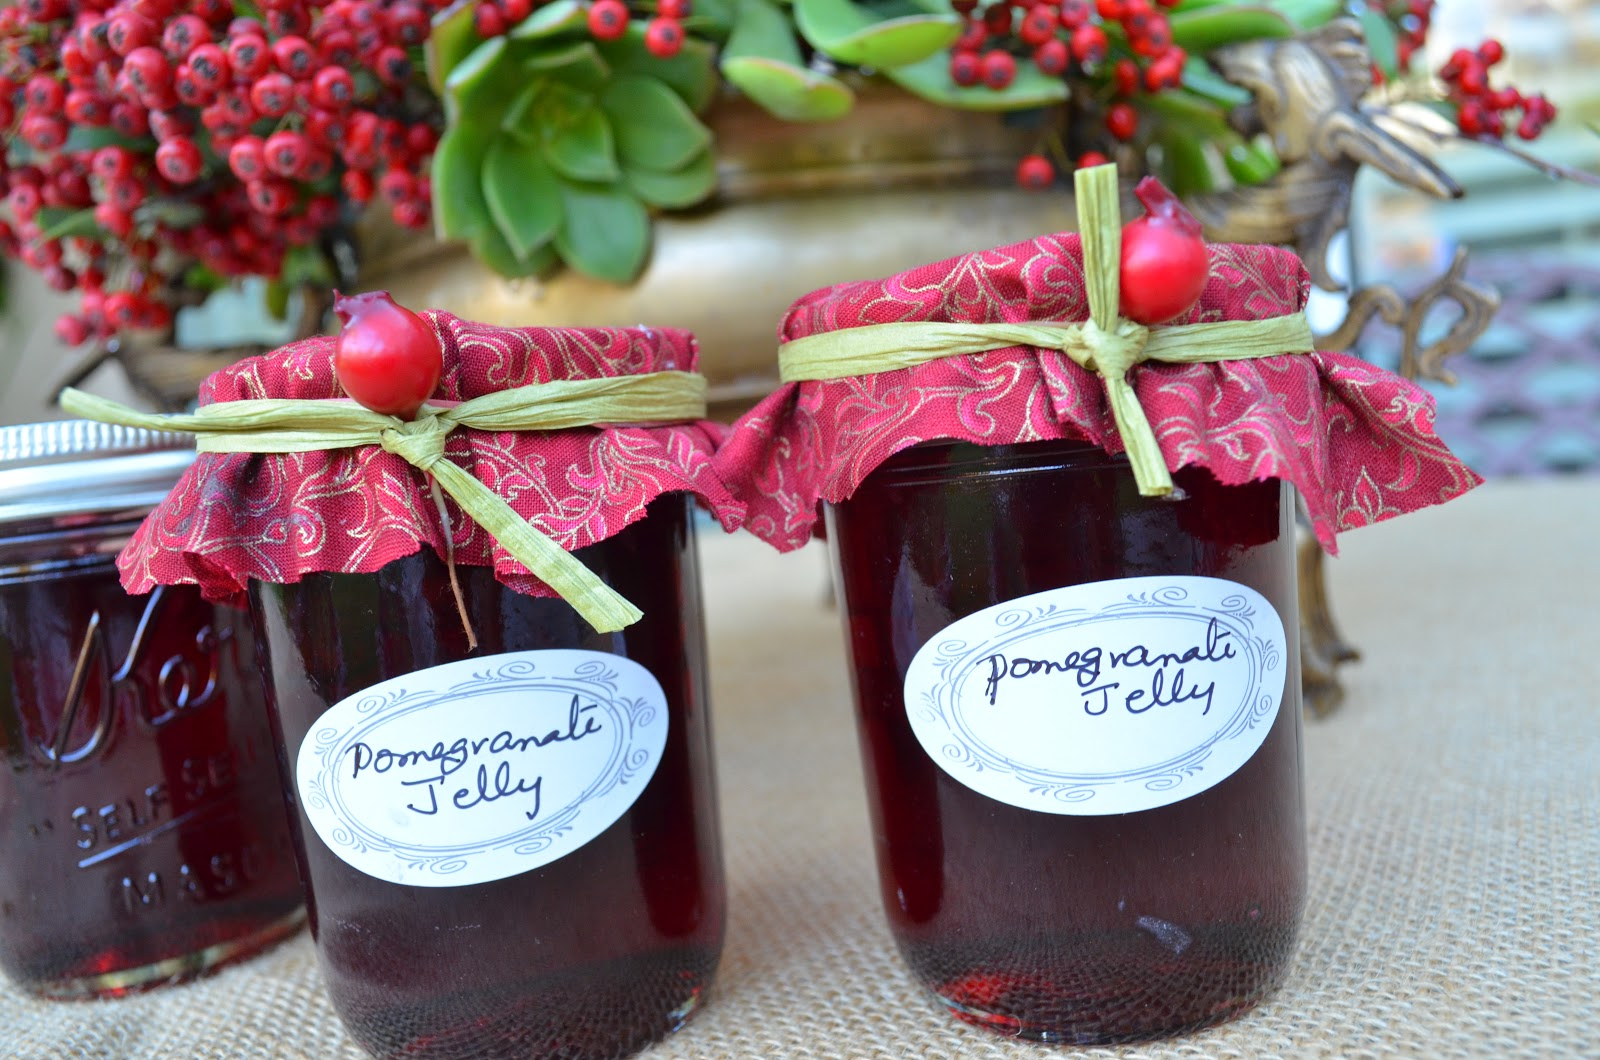 ... From an Ethnic Indian Kitchen: Homemade gifts - Pomegranate Jelly